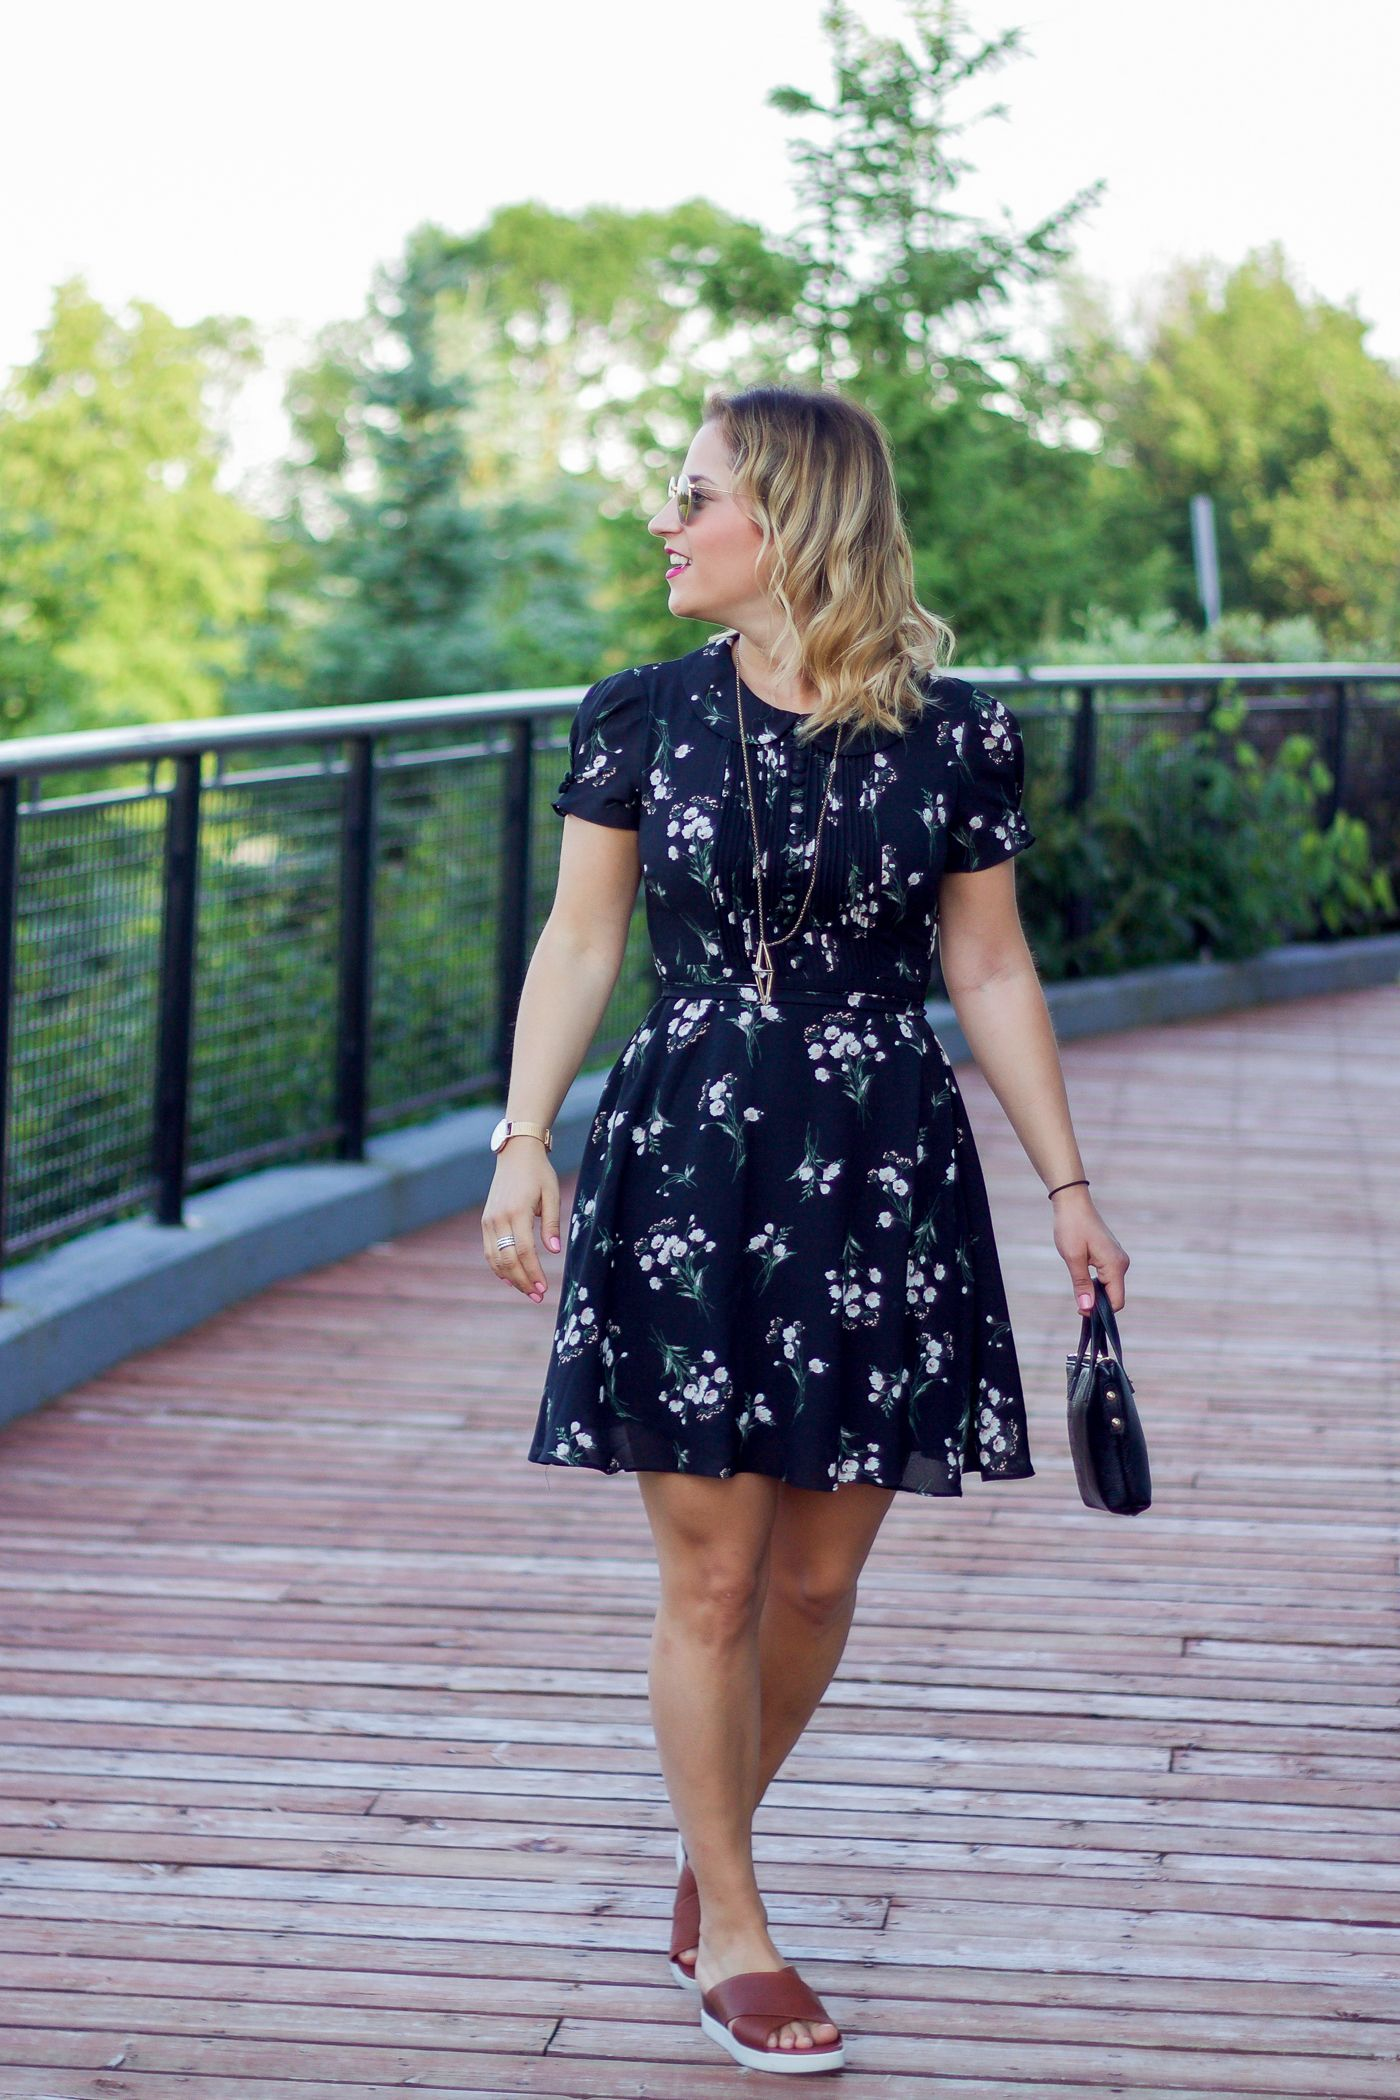 Black Floral Dress Summer Outfit Idea Something About That Floral Dress Summer Floral Dress Outfit Summer Street Style Summer Outfits [ 2100 x 1400 Pixel ]